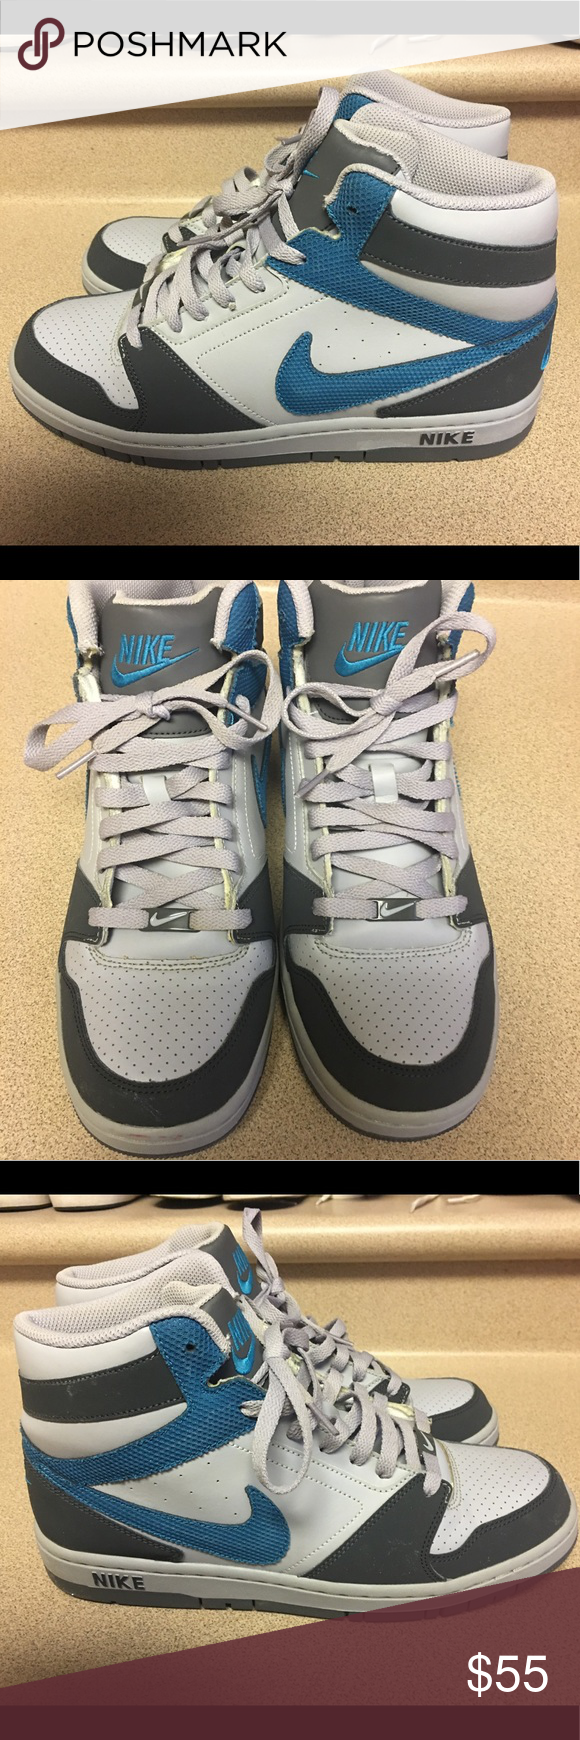 EUC Nike Prestige IV High Gray Men s Size 9.5 EUC Nike Prestige IV High  Athletic Gray Shoes Men s Size 9.5 436adeaaa